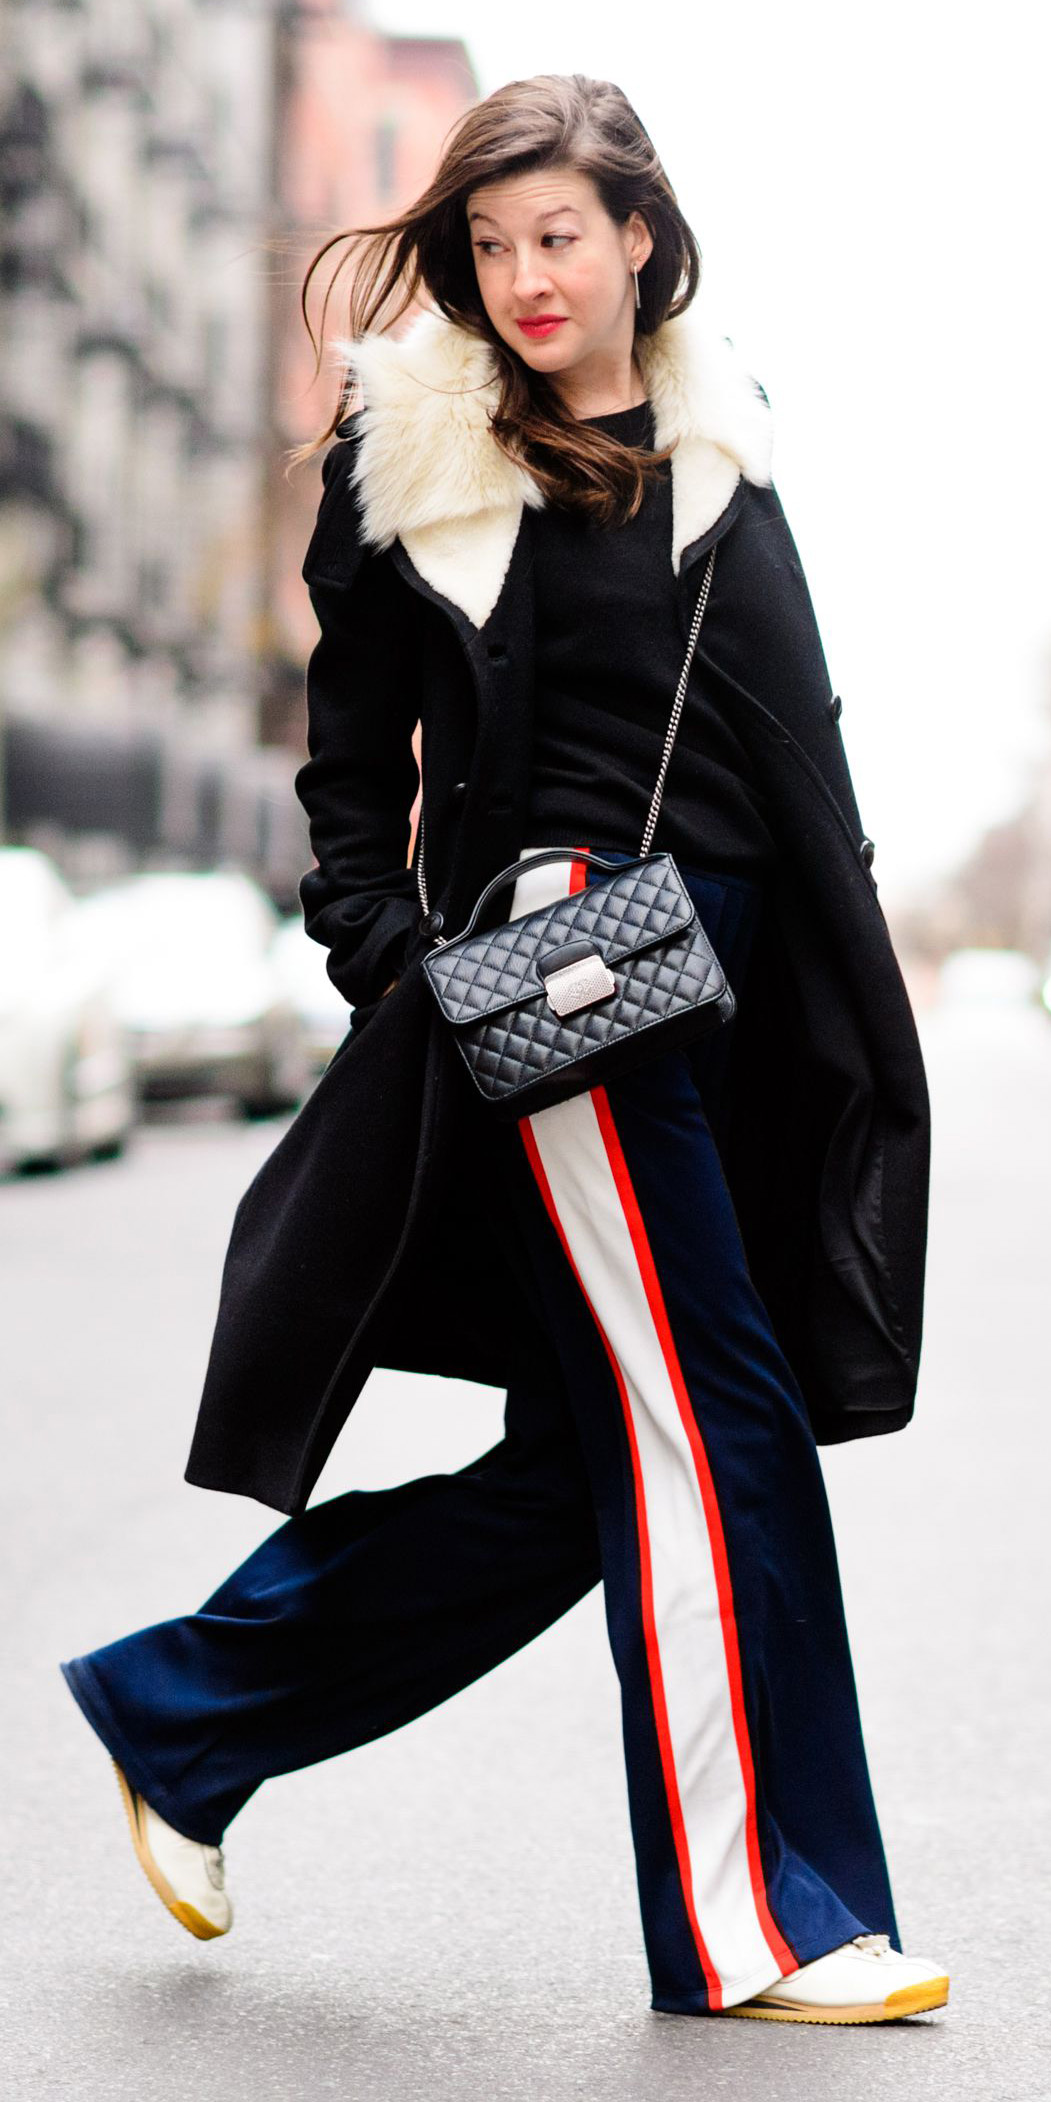 blue-navy-wideleg-pants-trackpants-black-sweater-black-bag-hairr-black-jacket-coat-white-shoe-sneakers-fall-winter-weekend.jpg